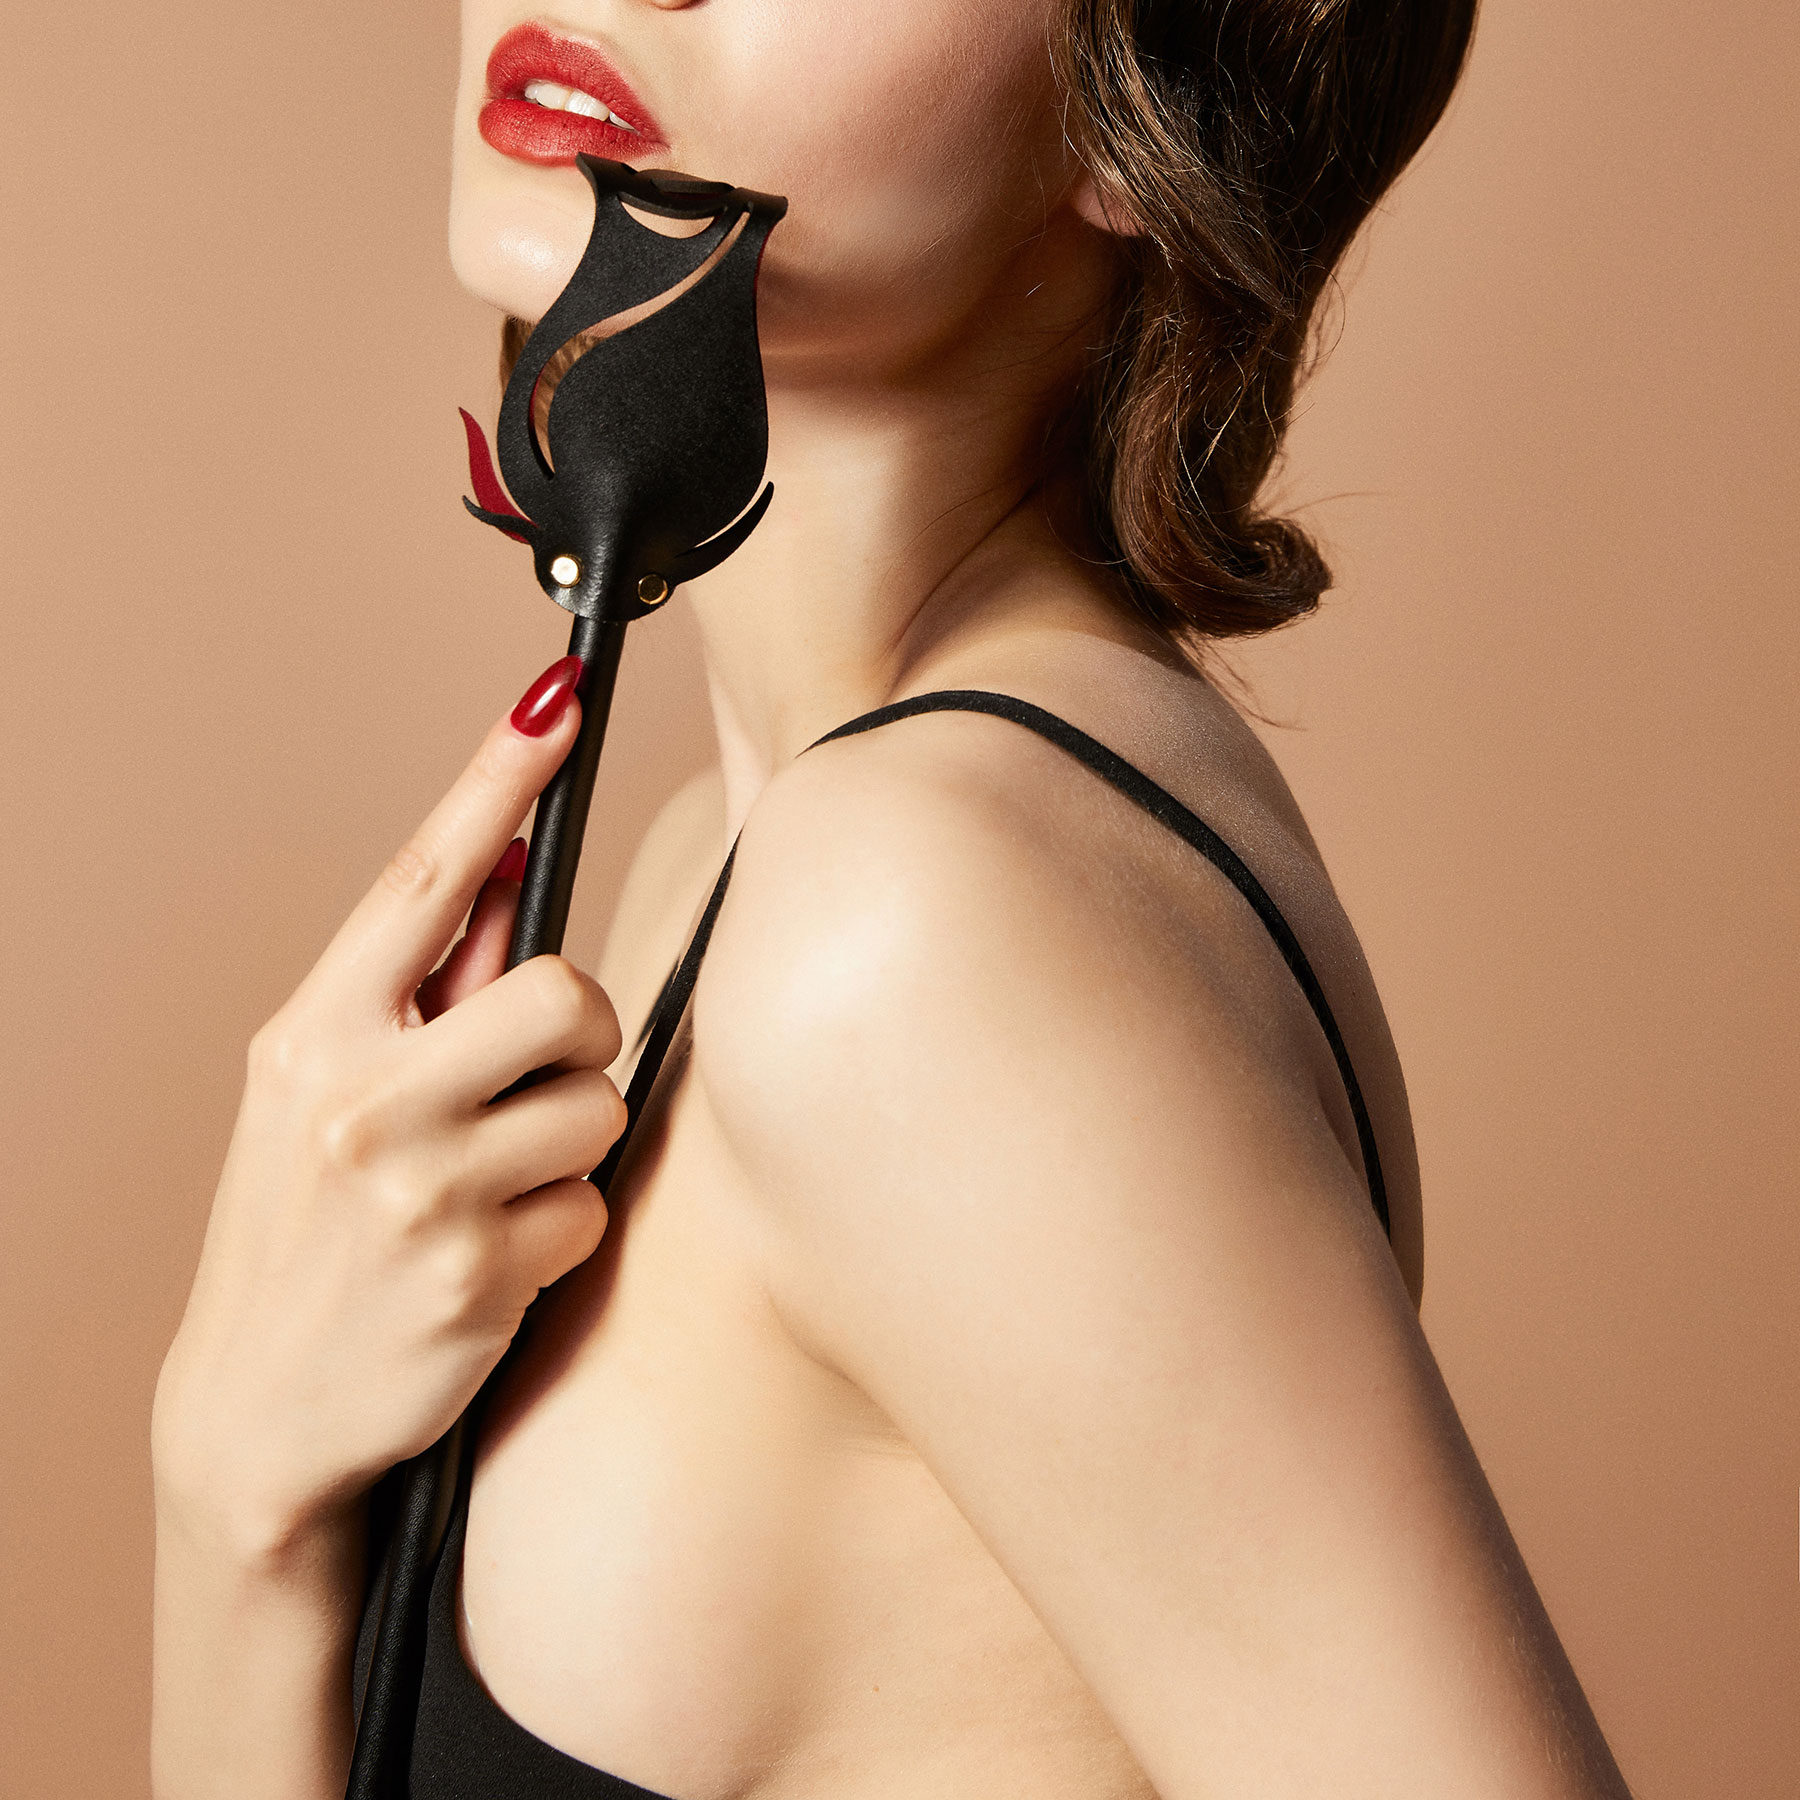 ZALO & UPKO Doll Designer Collection Leather Rose Riding Crop Displayed With Model 2